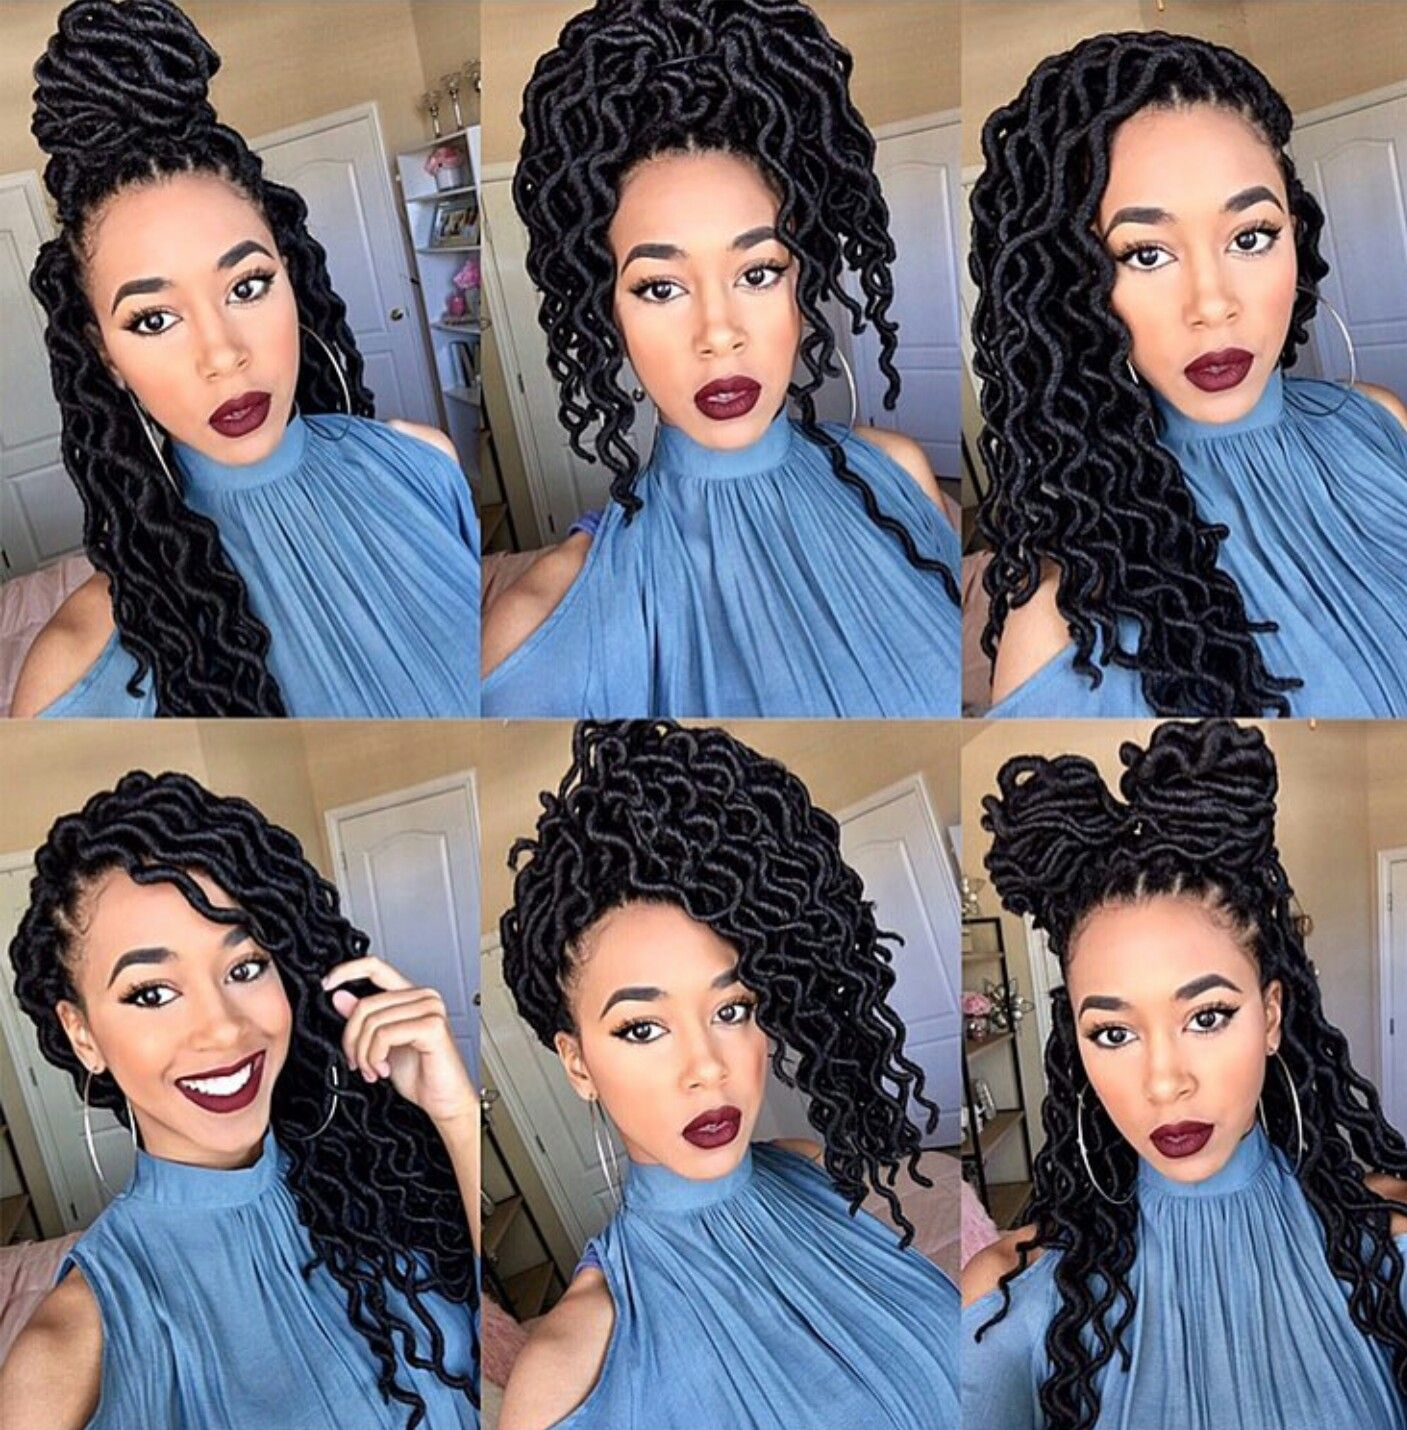 Faux Locs Hairstyles Enchanting Faux Locs Faux Curly Locs  Hair Pinterest  Faux Locs Locs And